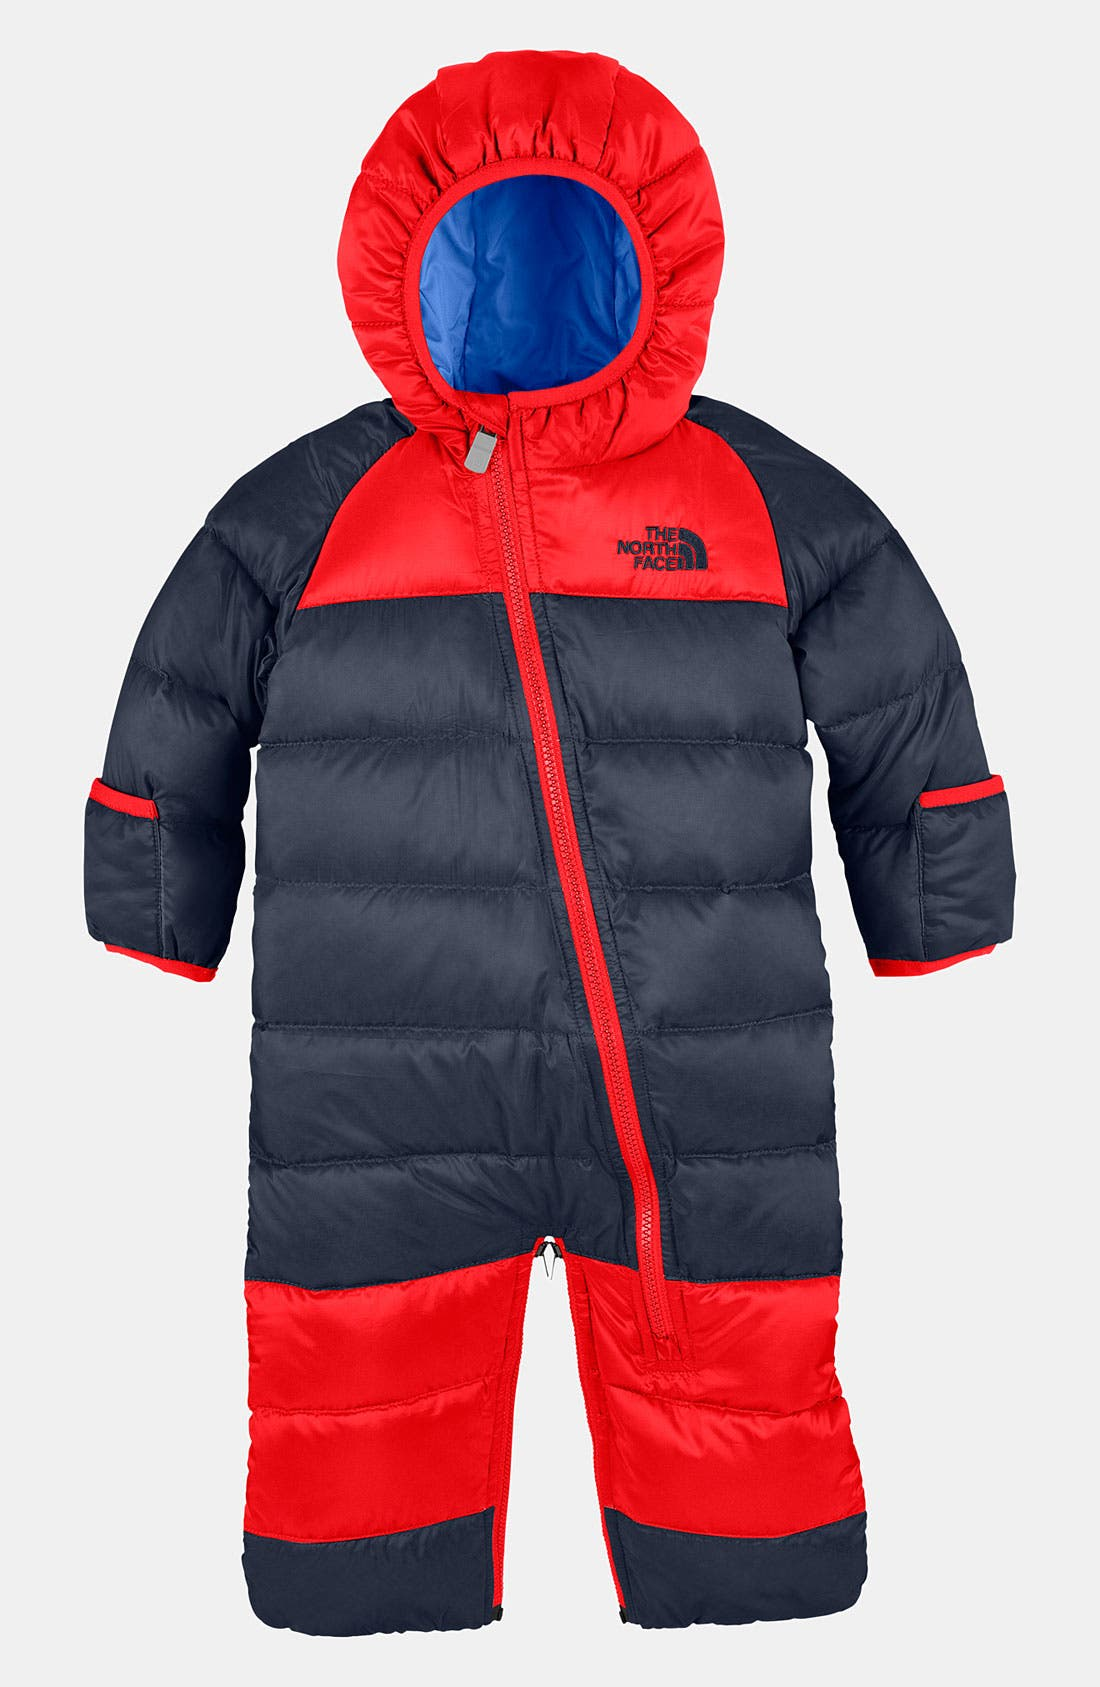 Main Image - The North Face 'Lil' Snug' Down Bunting (Infant)